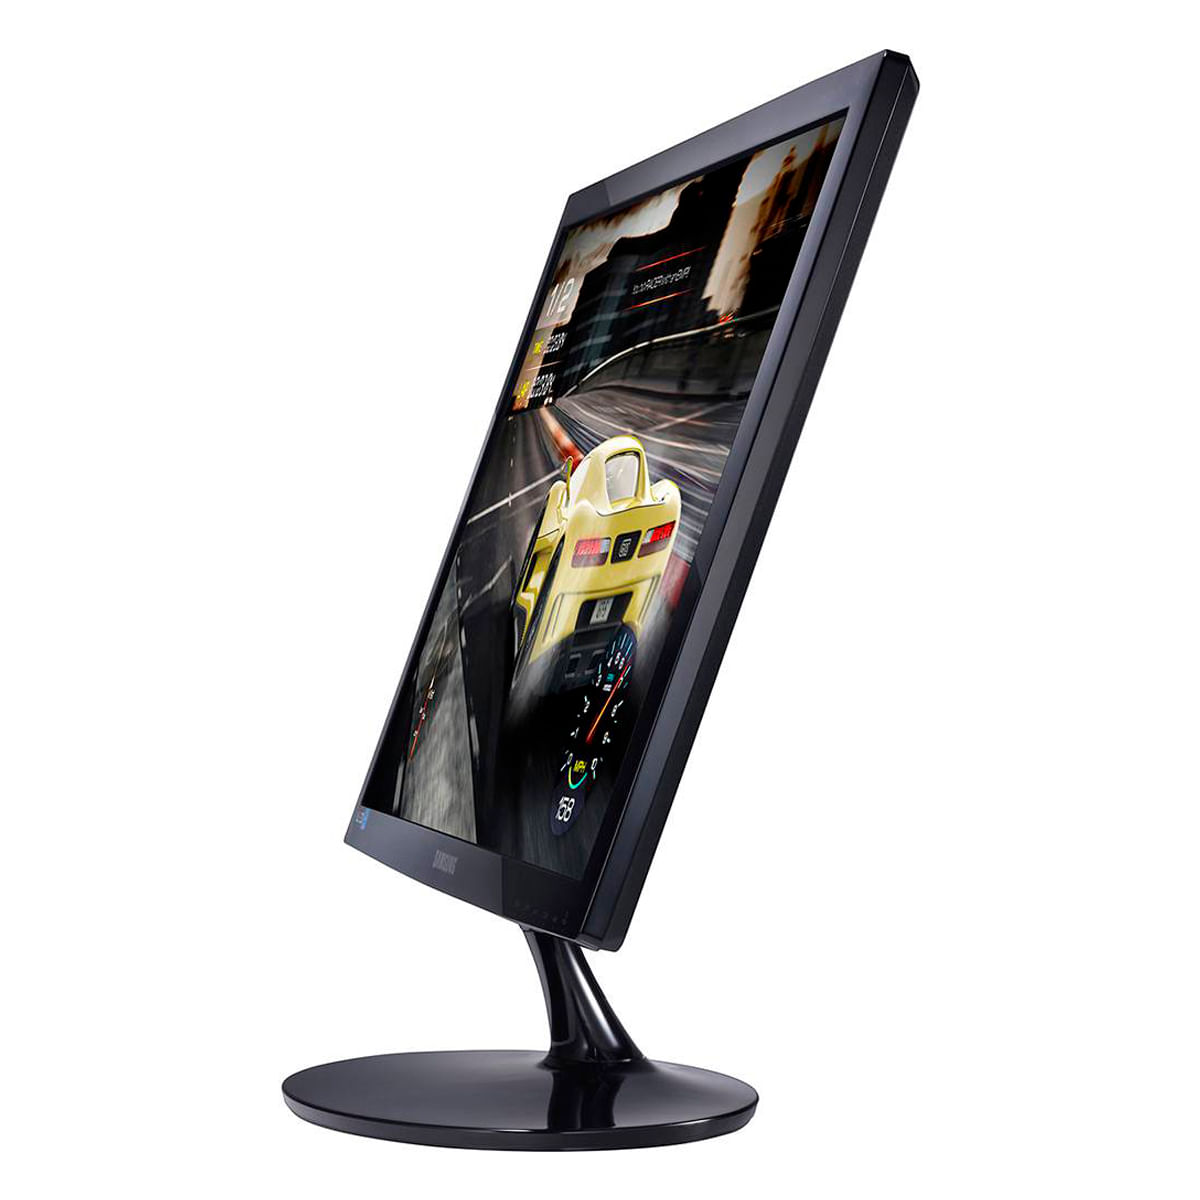 Foto 5 - Monitor Game Samsung 24 Polegadas LED Full HD LS24D332HSX/ZD